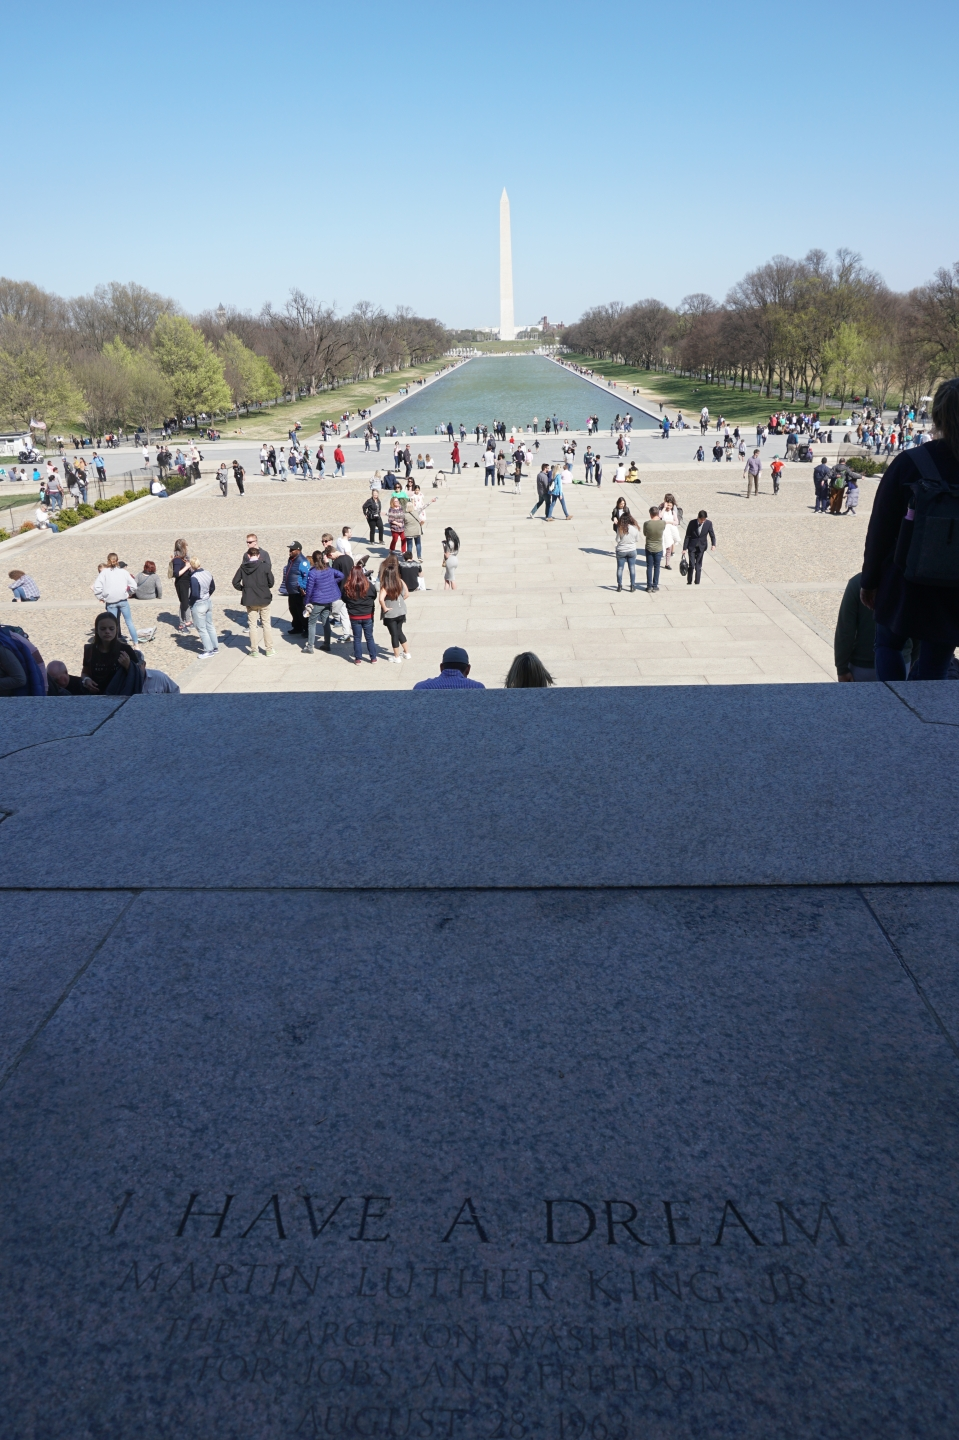 In front of the Lincoln Memorial